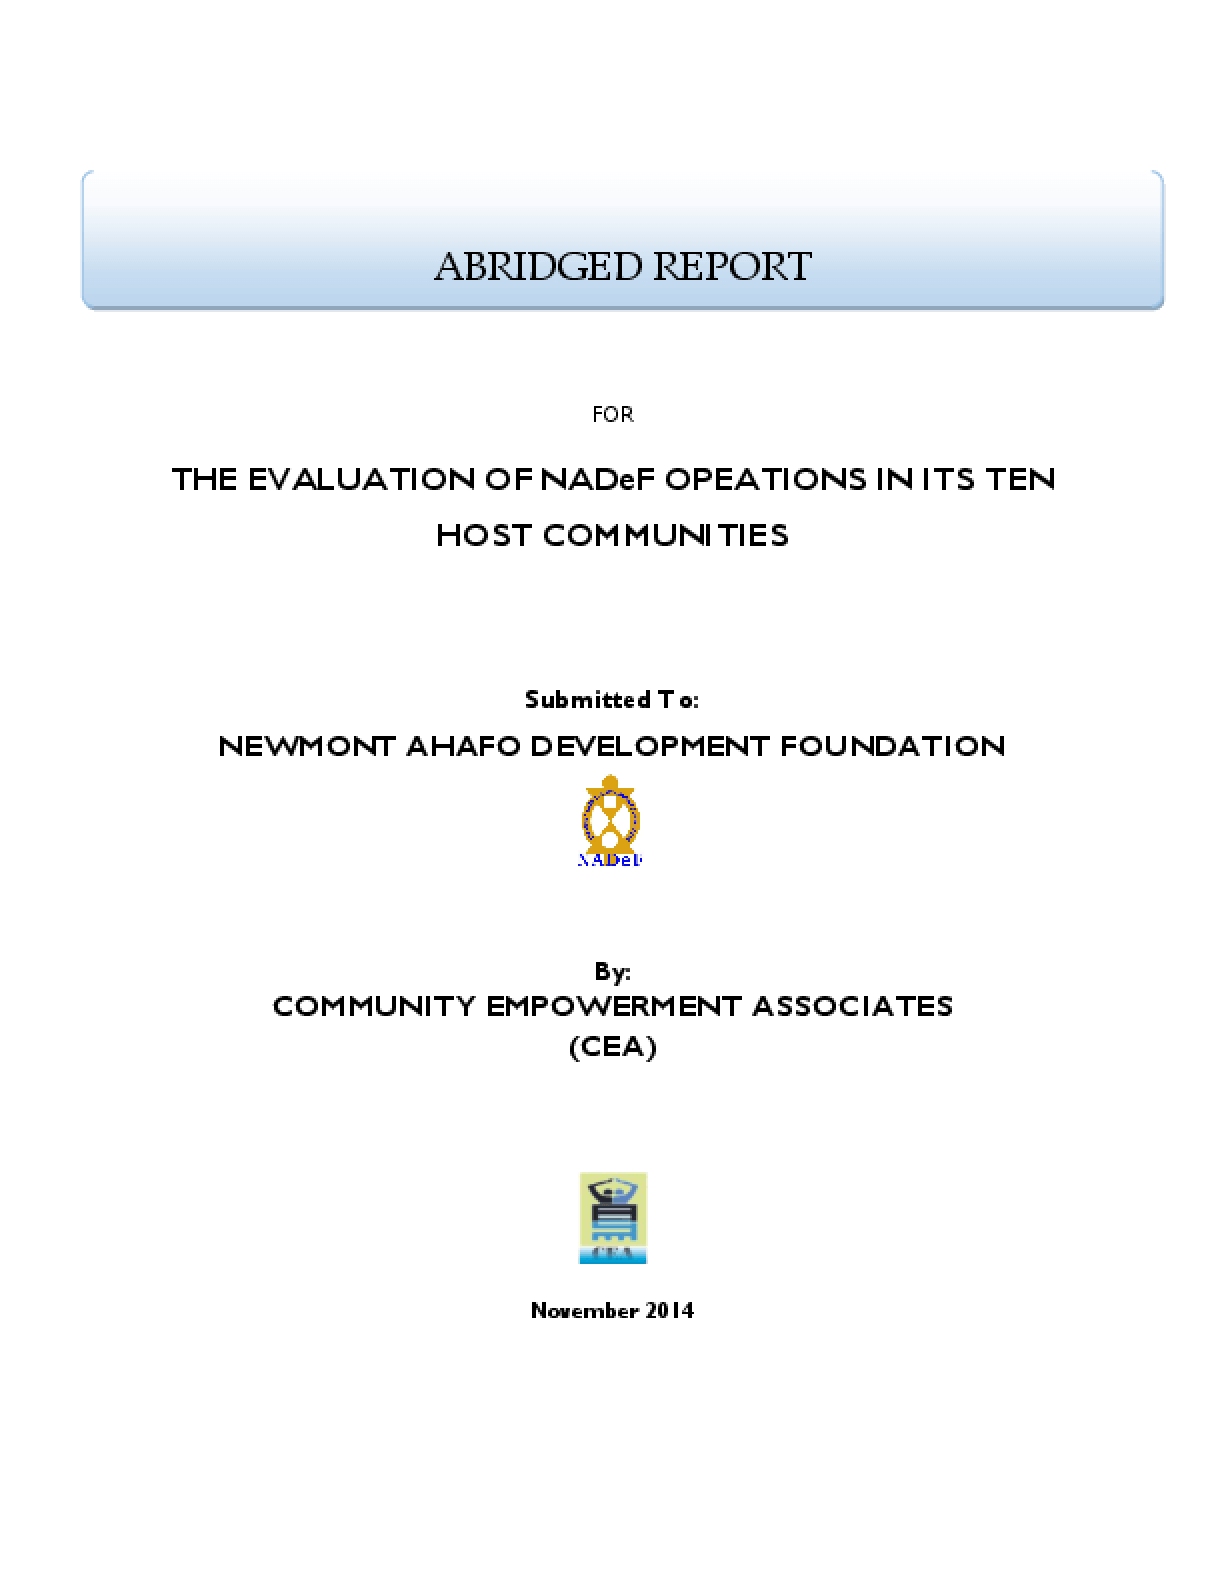 Abridged Report For The Evaluation of NADeF Operations In Its Ten Host Communities